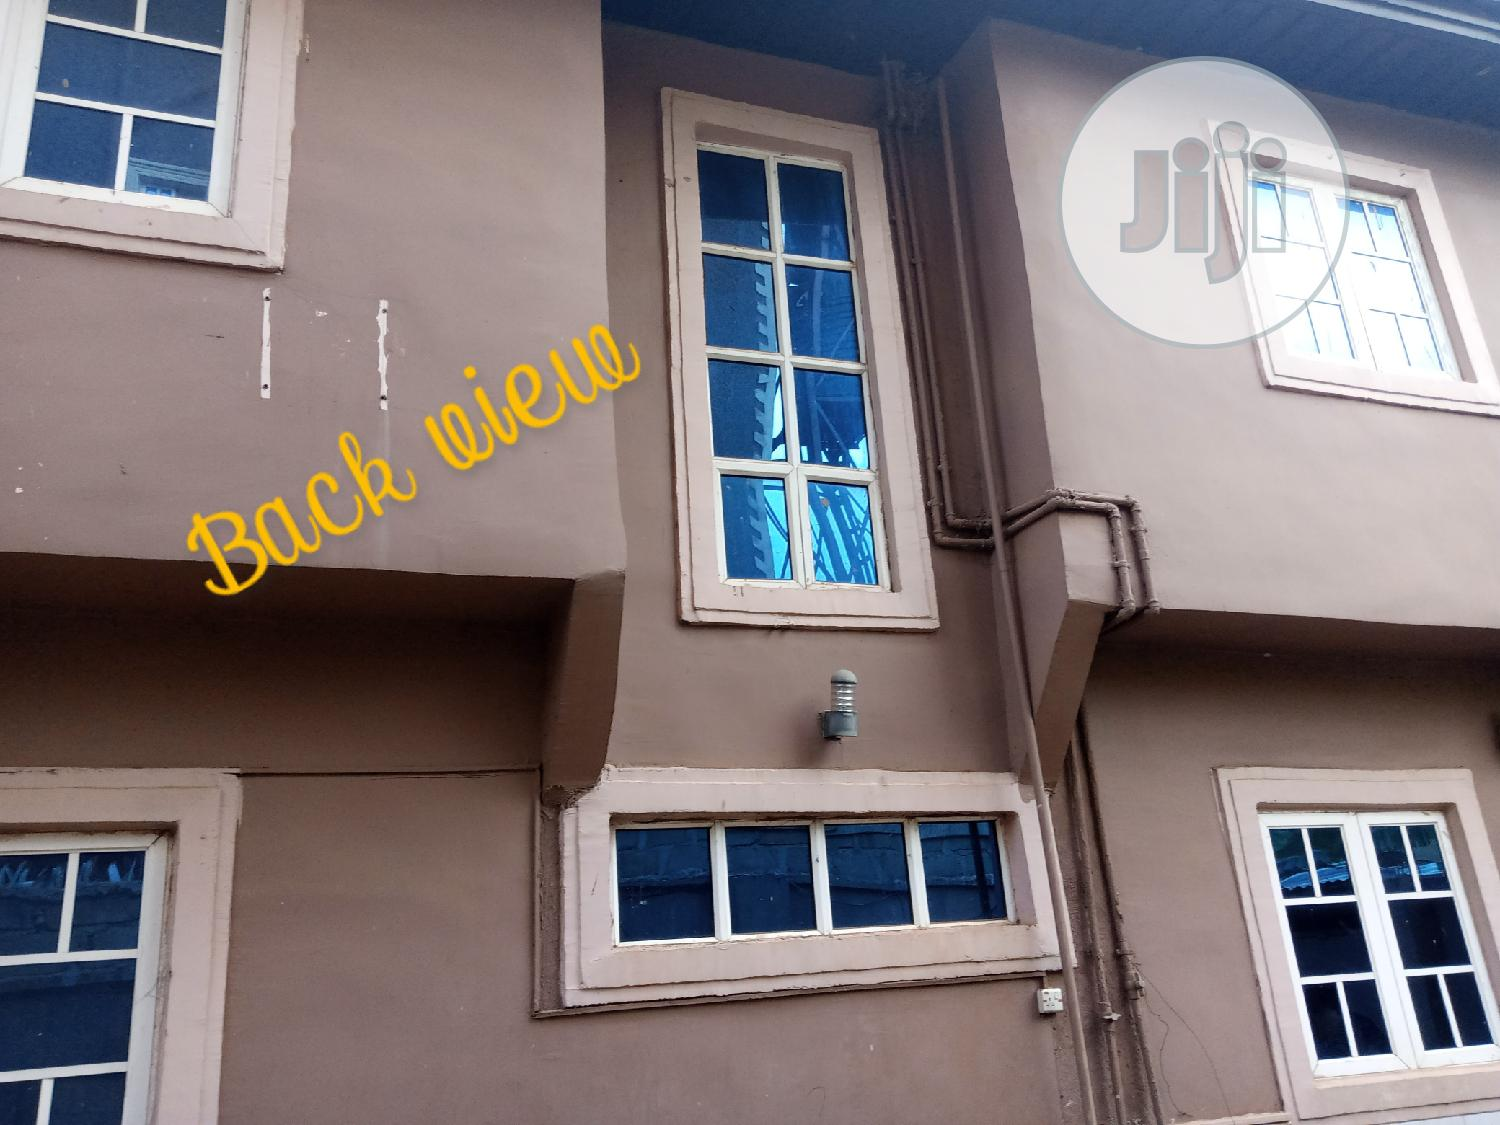 5 Bedroom/ 2parlors Duplex at Oba | Houses & Apartments For Sale for sale in Onitsha, Anambra State, Nigeria